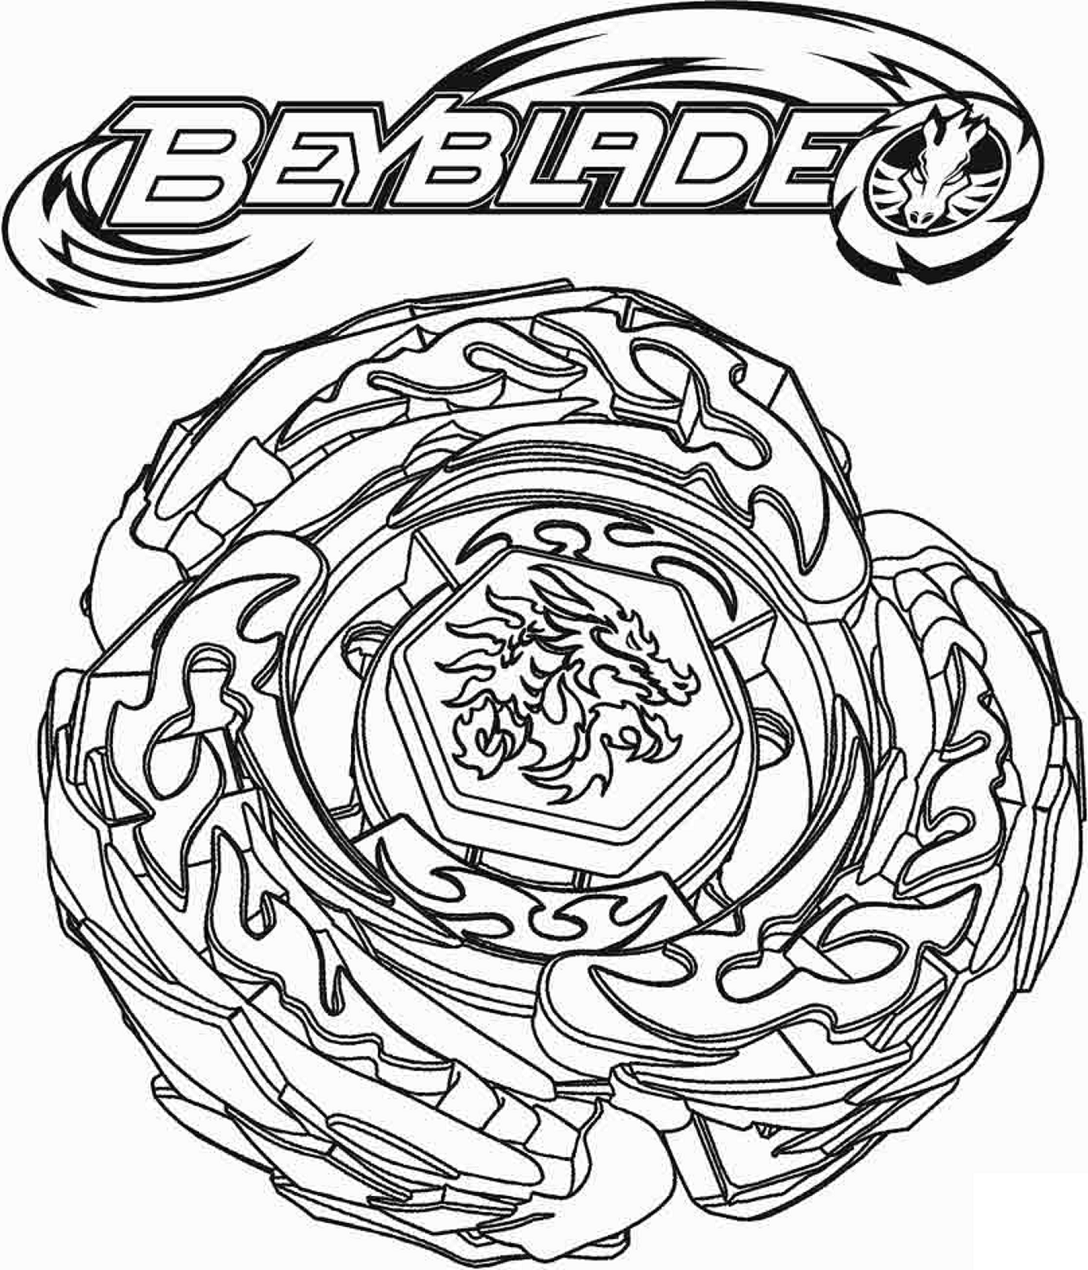 Drago Beyblade Coloring Pages For Kids Printable Free